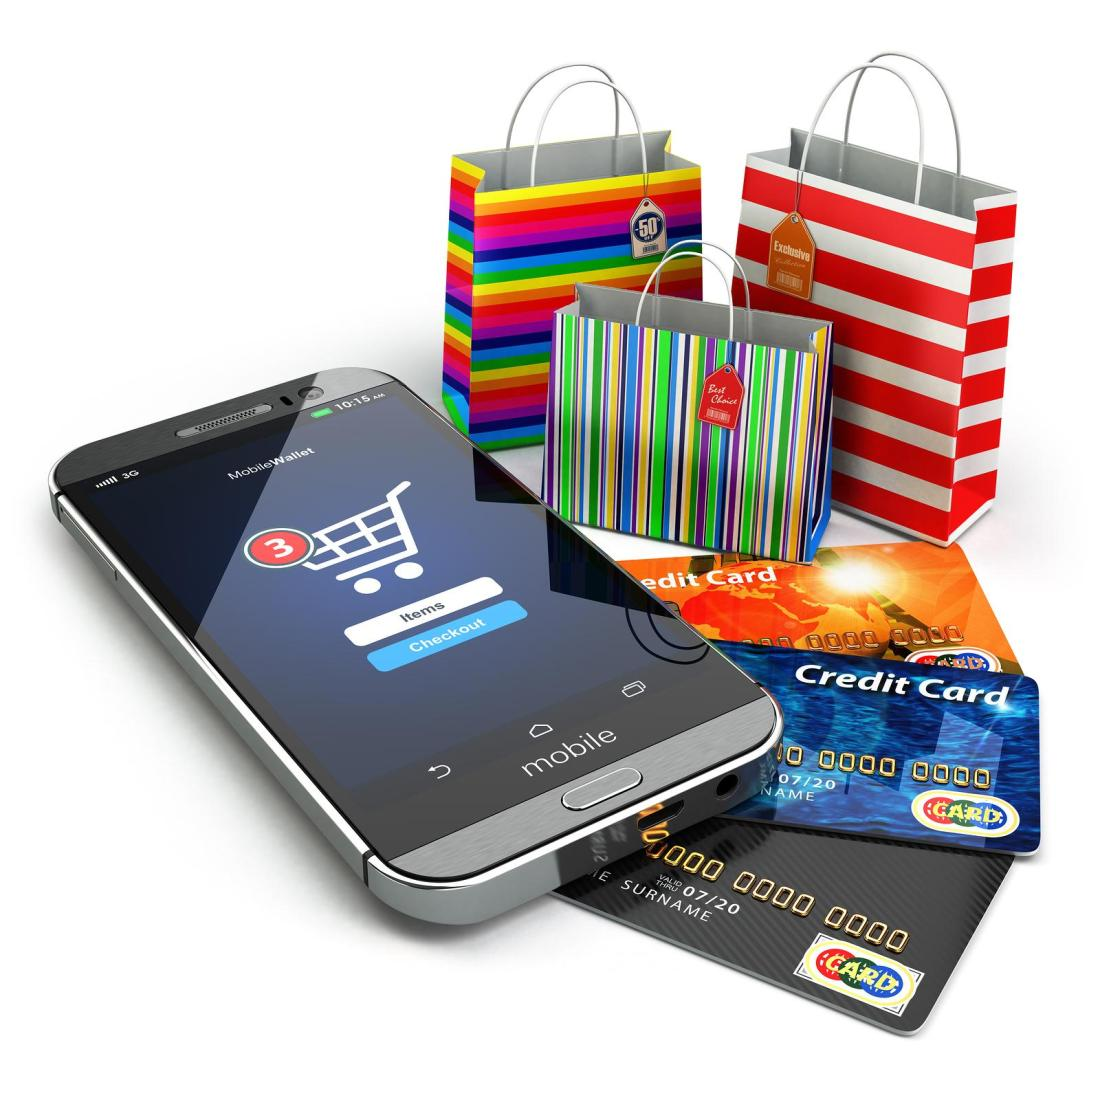 Checklist for smartphone marketing must be kept when kicking off your mobile first eCommerce smartphone strategy.